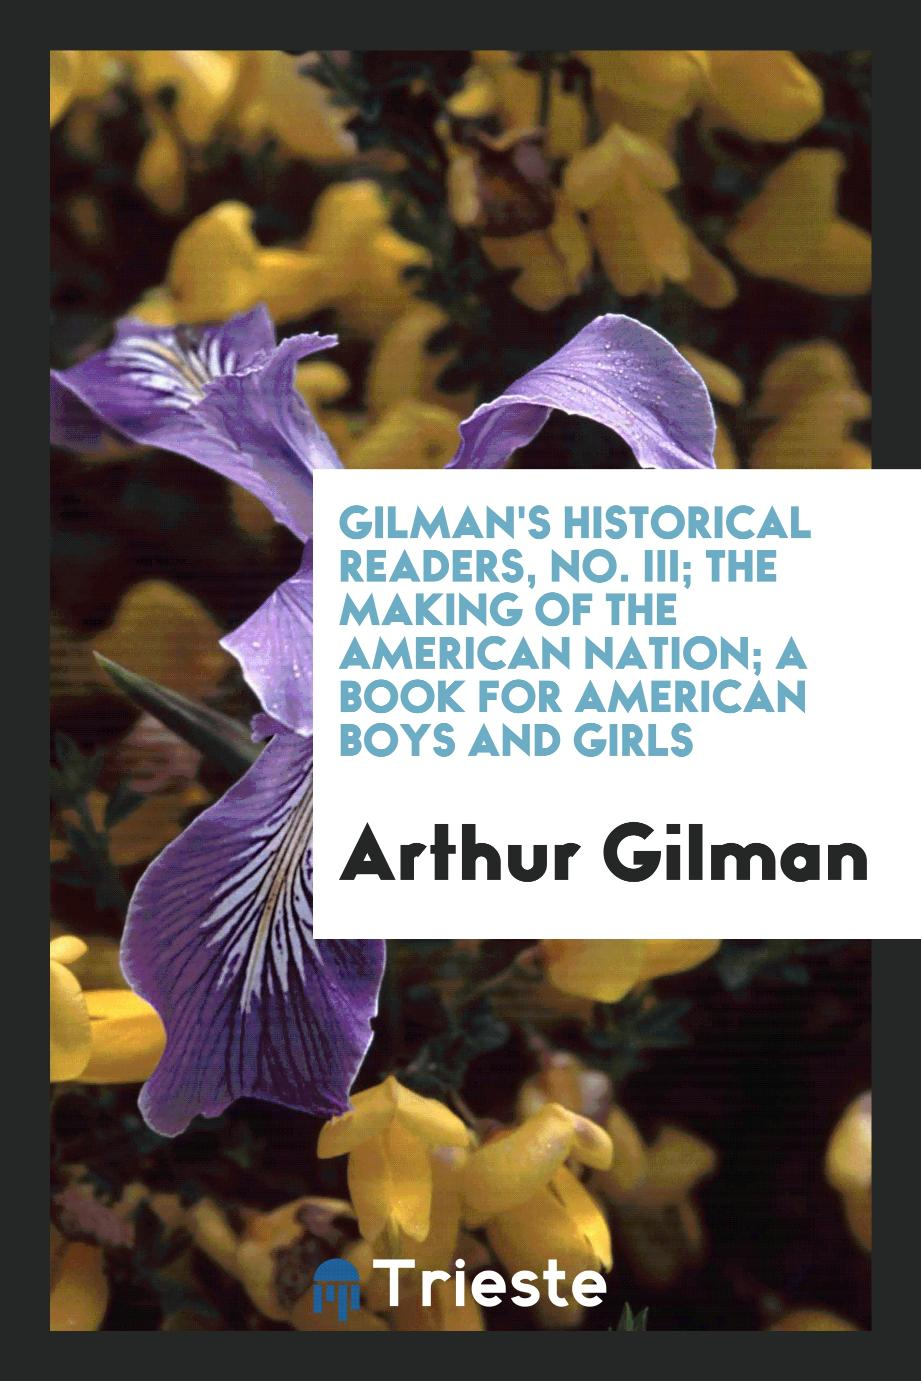 Gilman's Historical Readers, No. III; The Making of the American Nation; A Book for American Boys and Girls